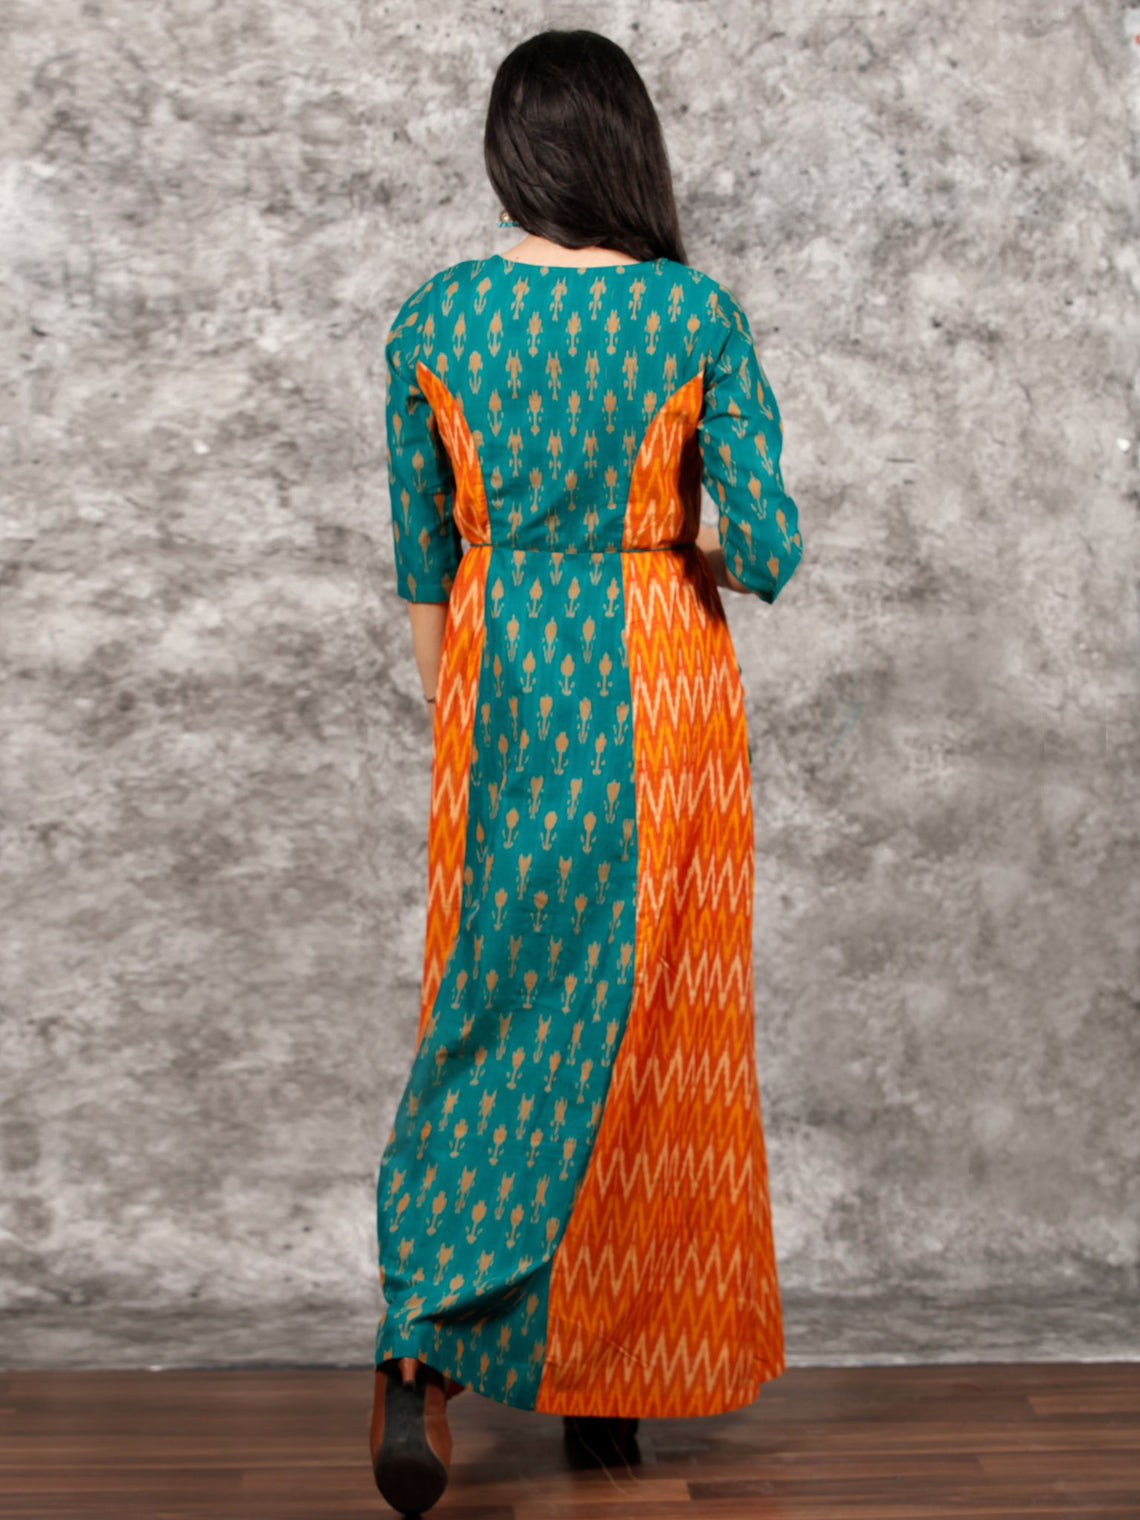 Green Orange Yellow Hand Woven Cotton Mercerized Ikat Princess Cut Cotton Long Dress - D308F1572